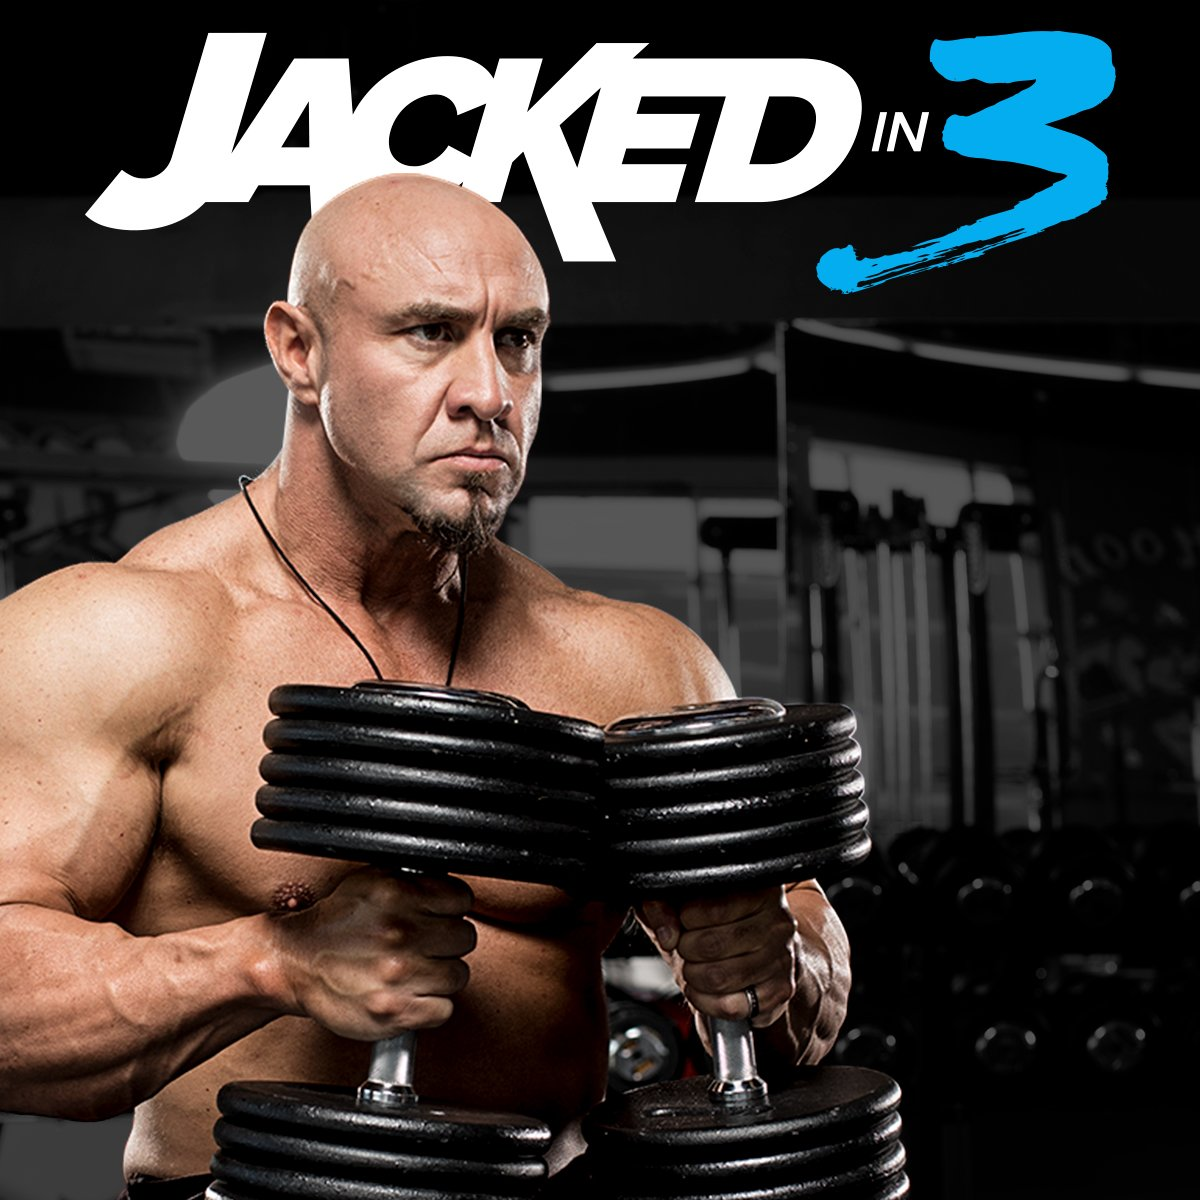 Jacked in 3